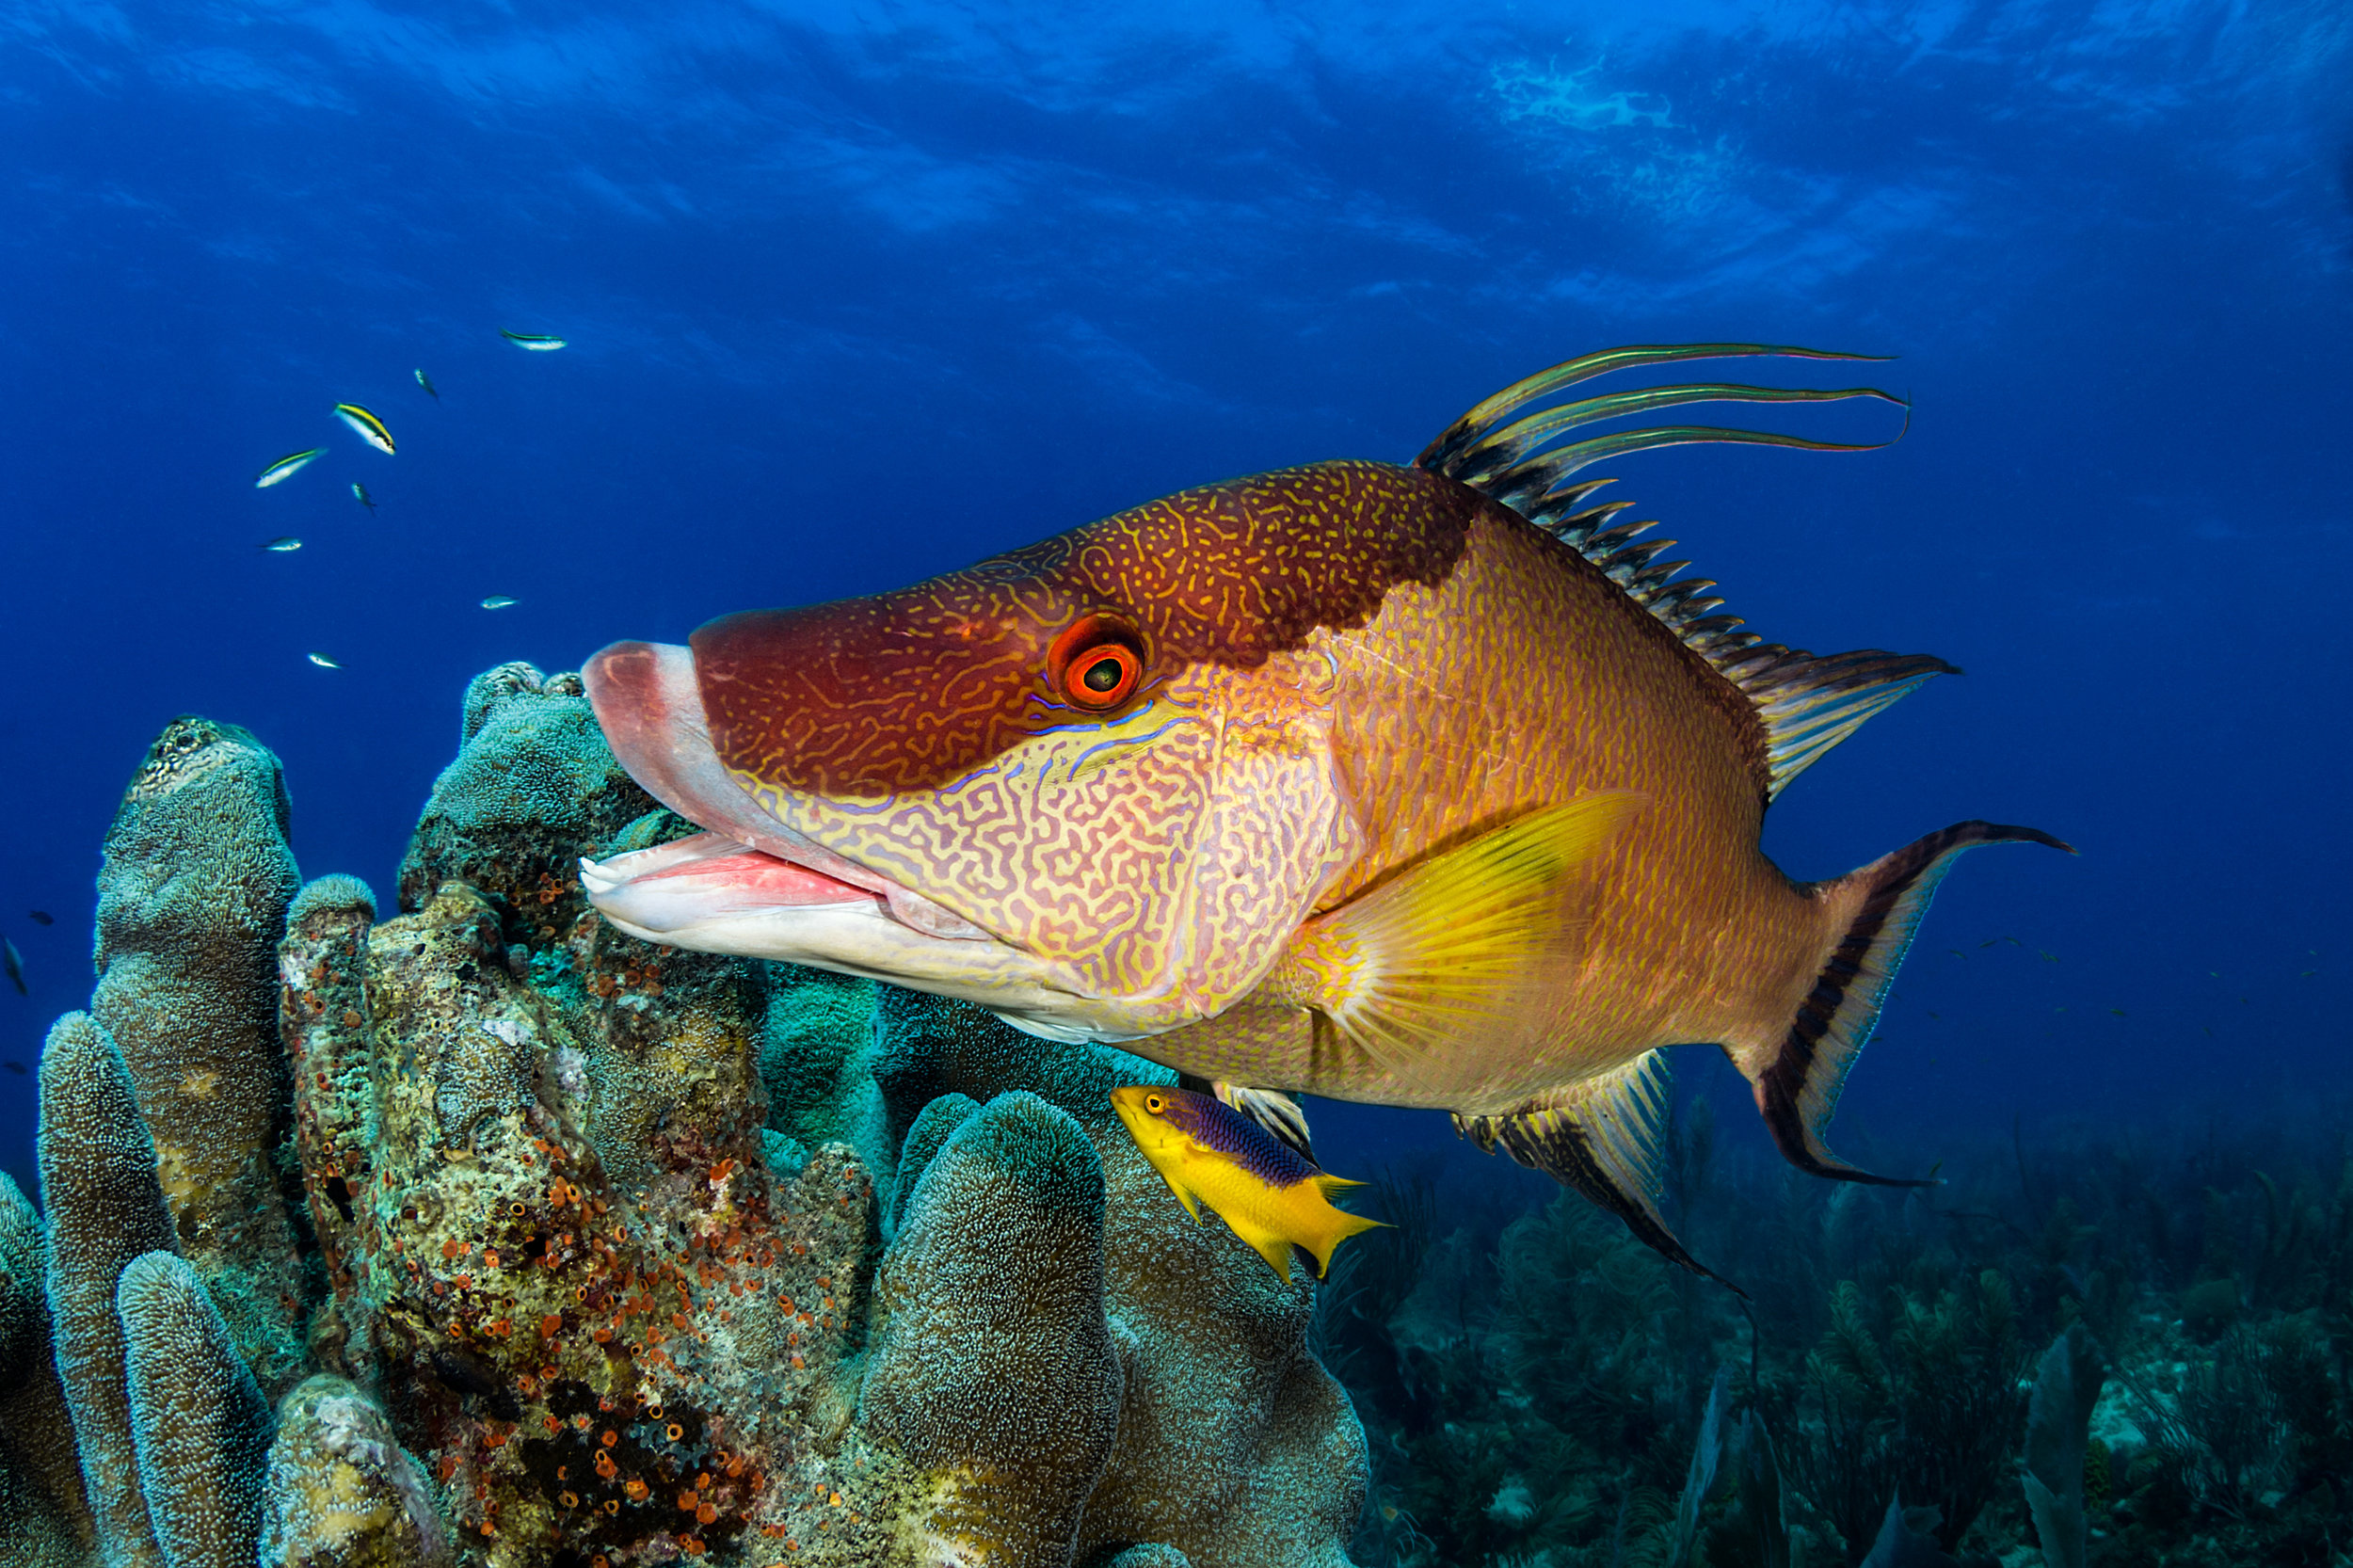 hogfish in cuba CREDIT: FABRICE DUDENHOFER / coral reef image bank